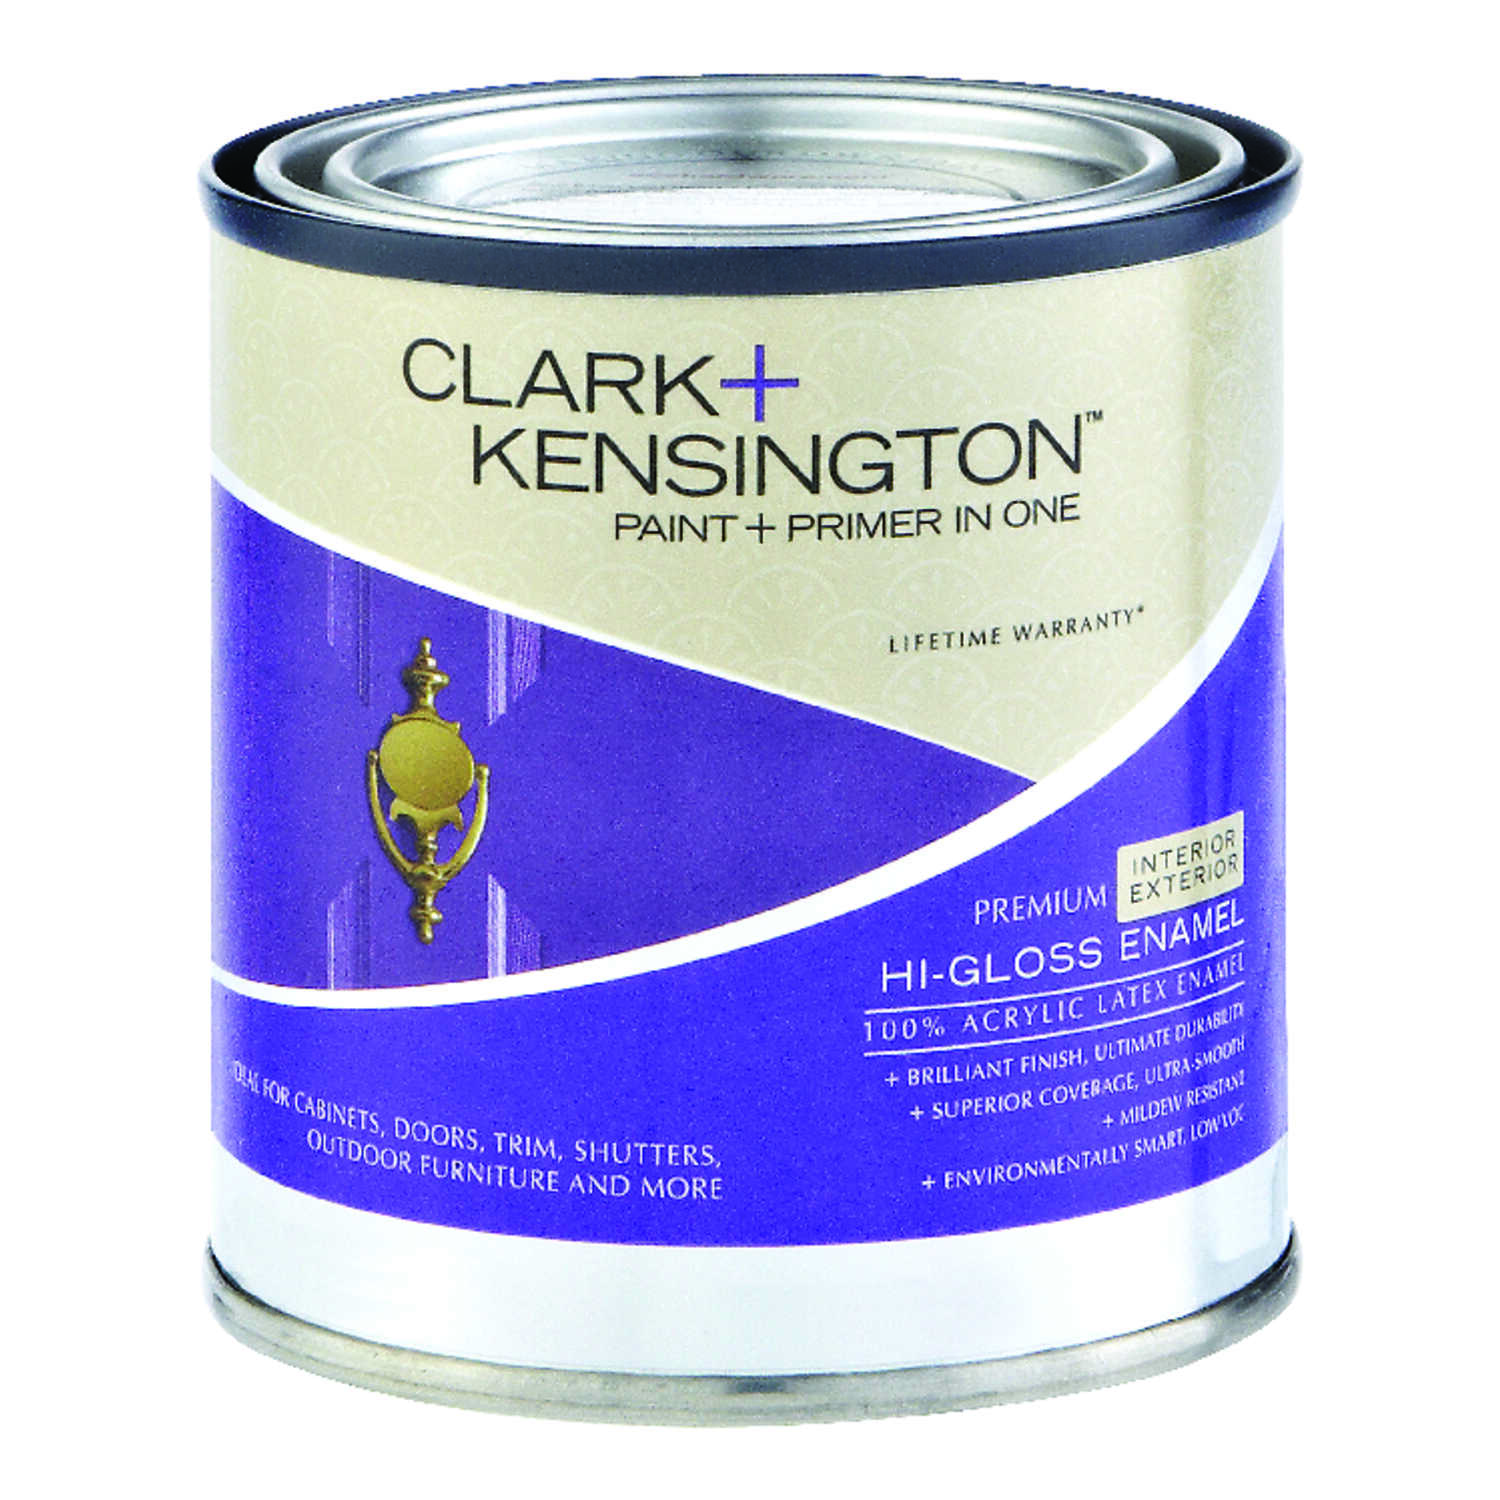 Clark+Kensington  High-Gloss  Acrylic Latex  Designer White  Paint and Primer  1/2 pt.